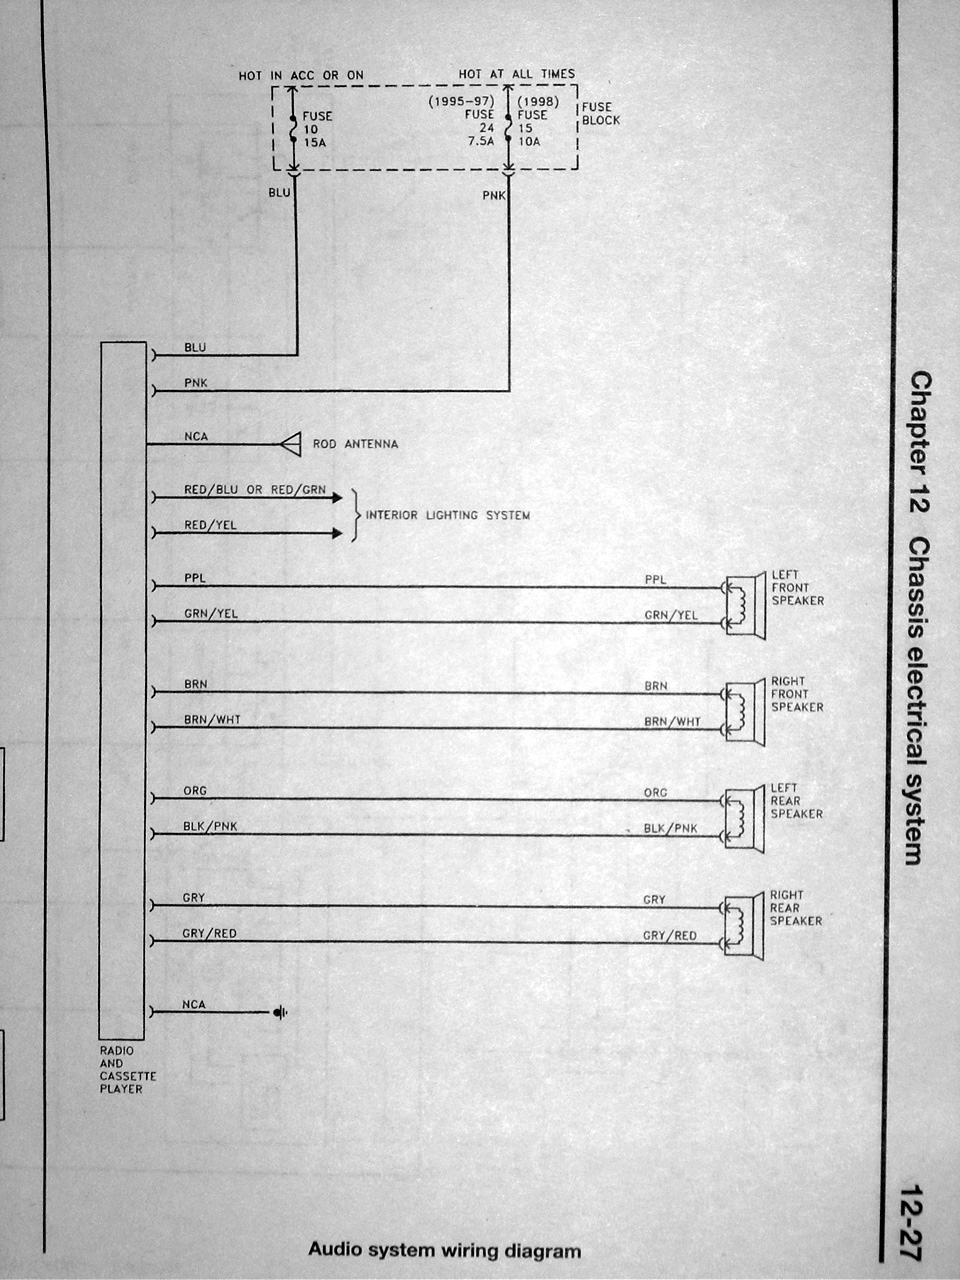 DSC01849 wiring diagram thread *useful info* nissan forum 2005 nissan 350z headlight wiring diagram at eliteediting.co